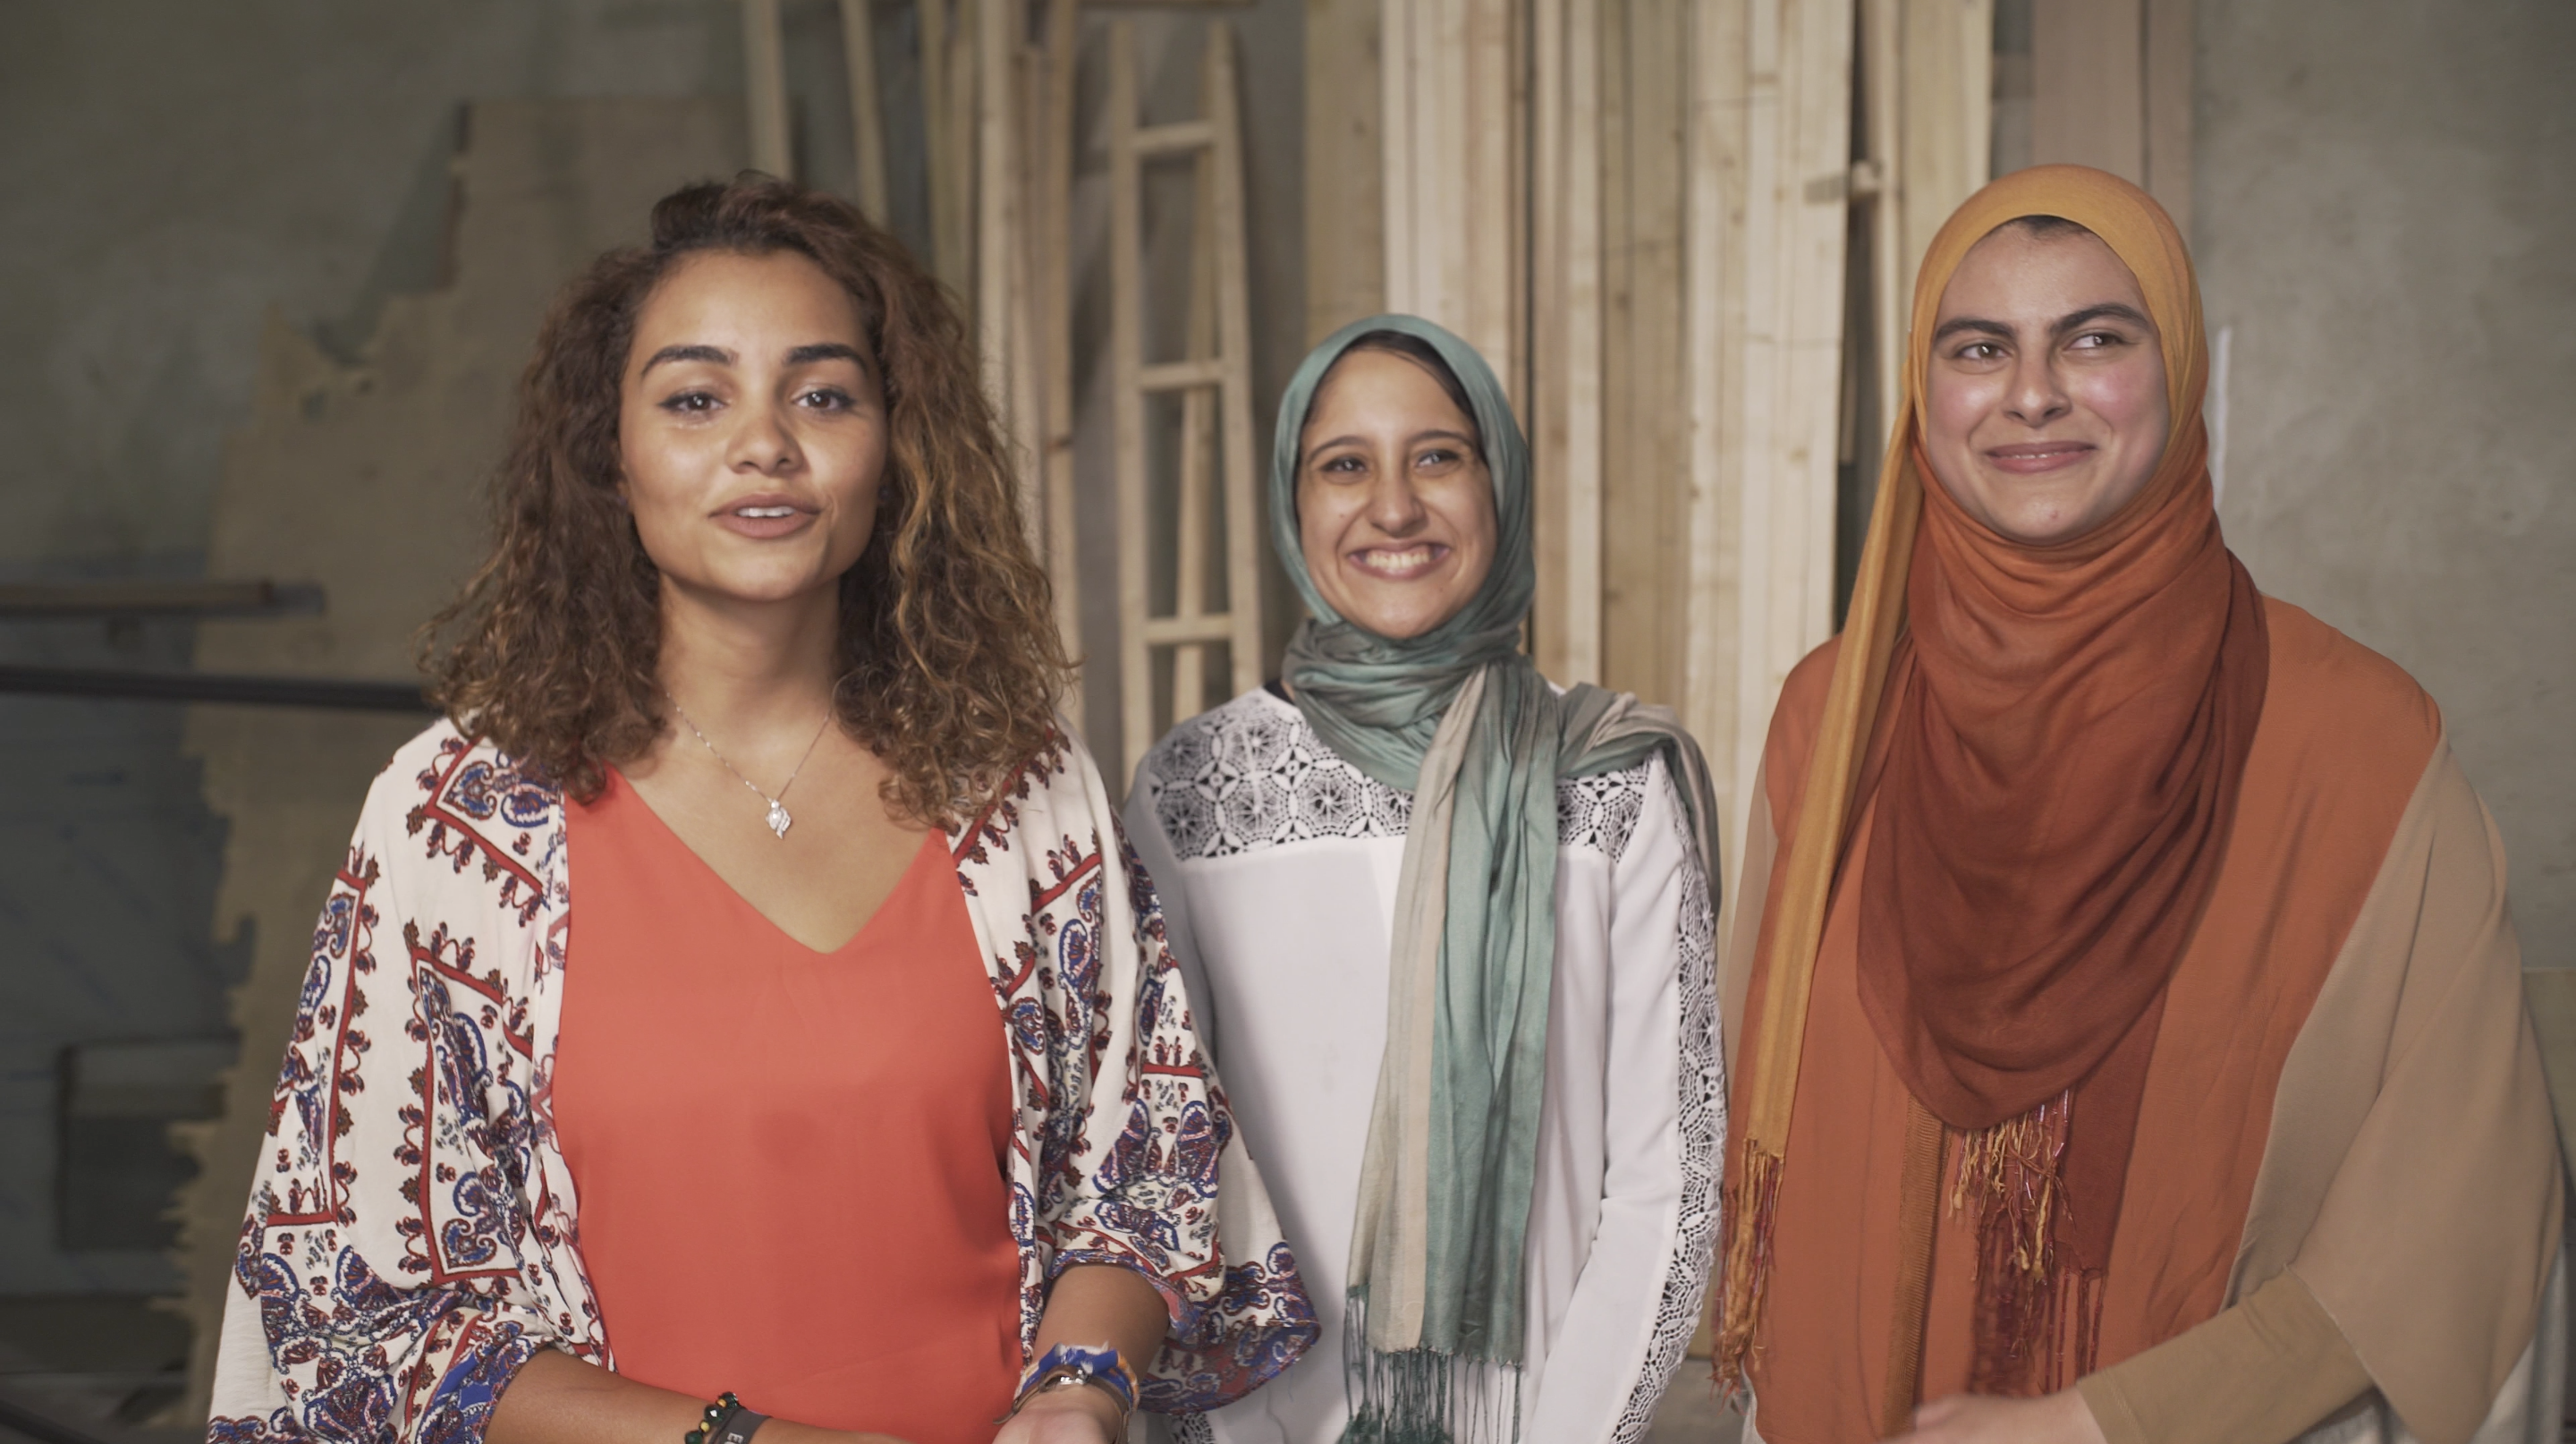 FMD Cofounders_Farah El-Rafei, Israa Mahmoud Ibrahim and Nada Ahmed Salem (from right to left) .